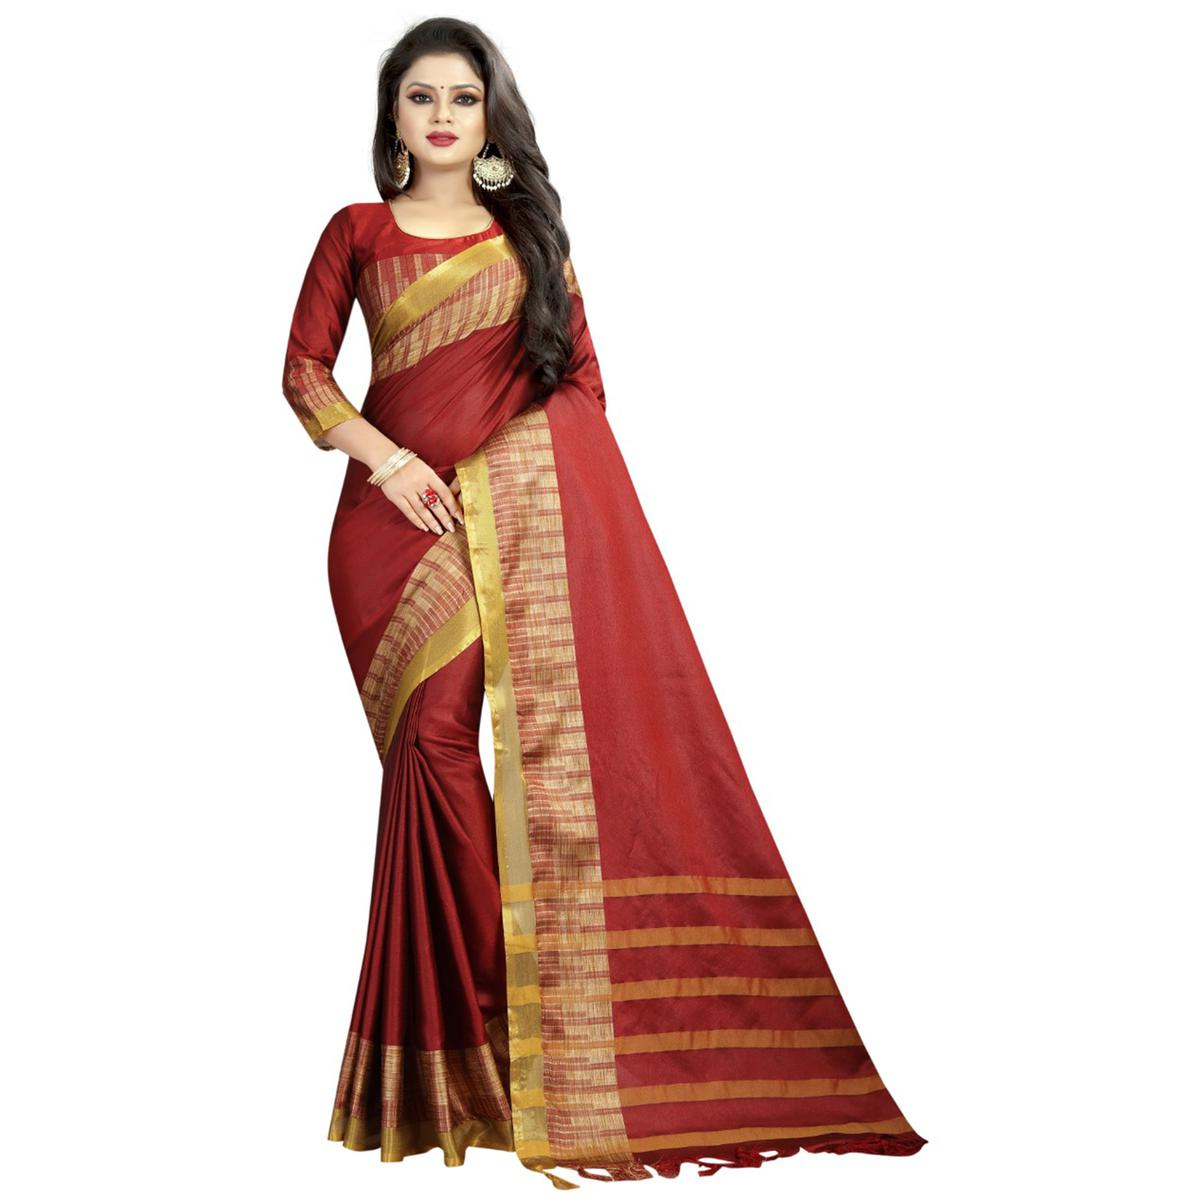 Blooming Maroon Colored Festive Wear Cotton Silk Saree